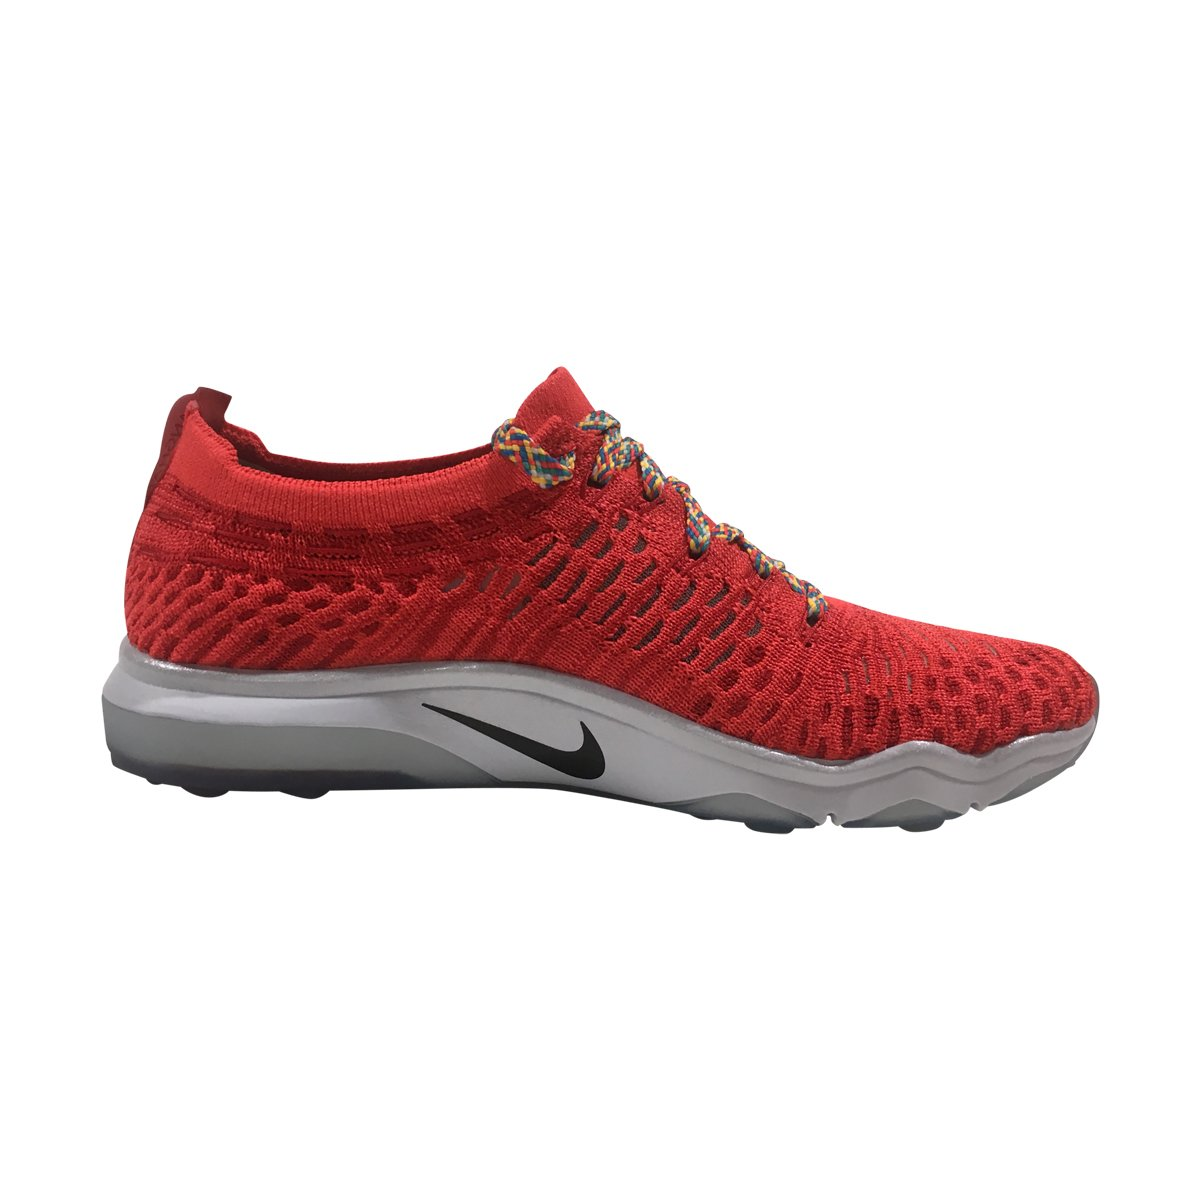 Amazon.com : Nike Womens Air Zoom Fearless FK City, Bright Crimson/White 5.5 US : Sports & Outdoors